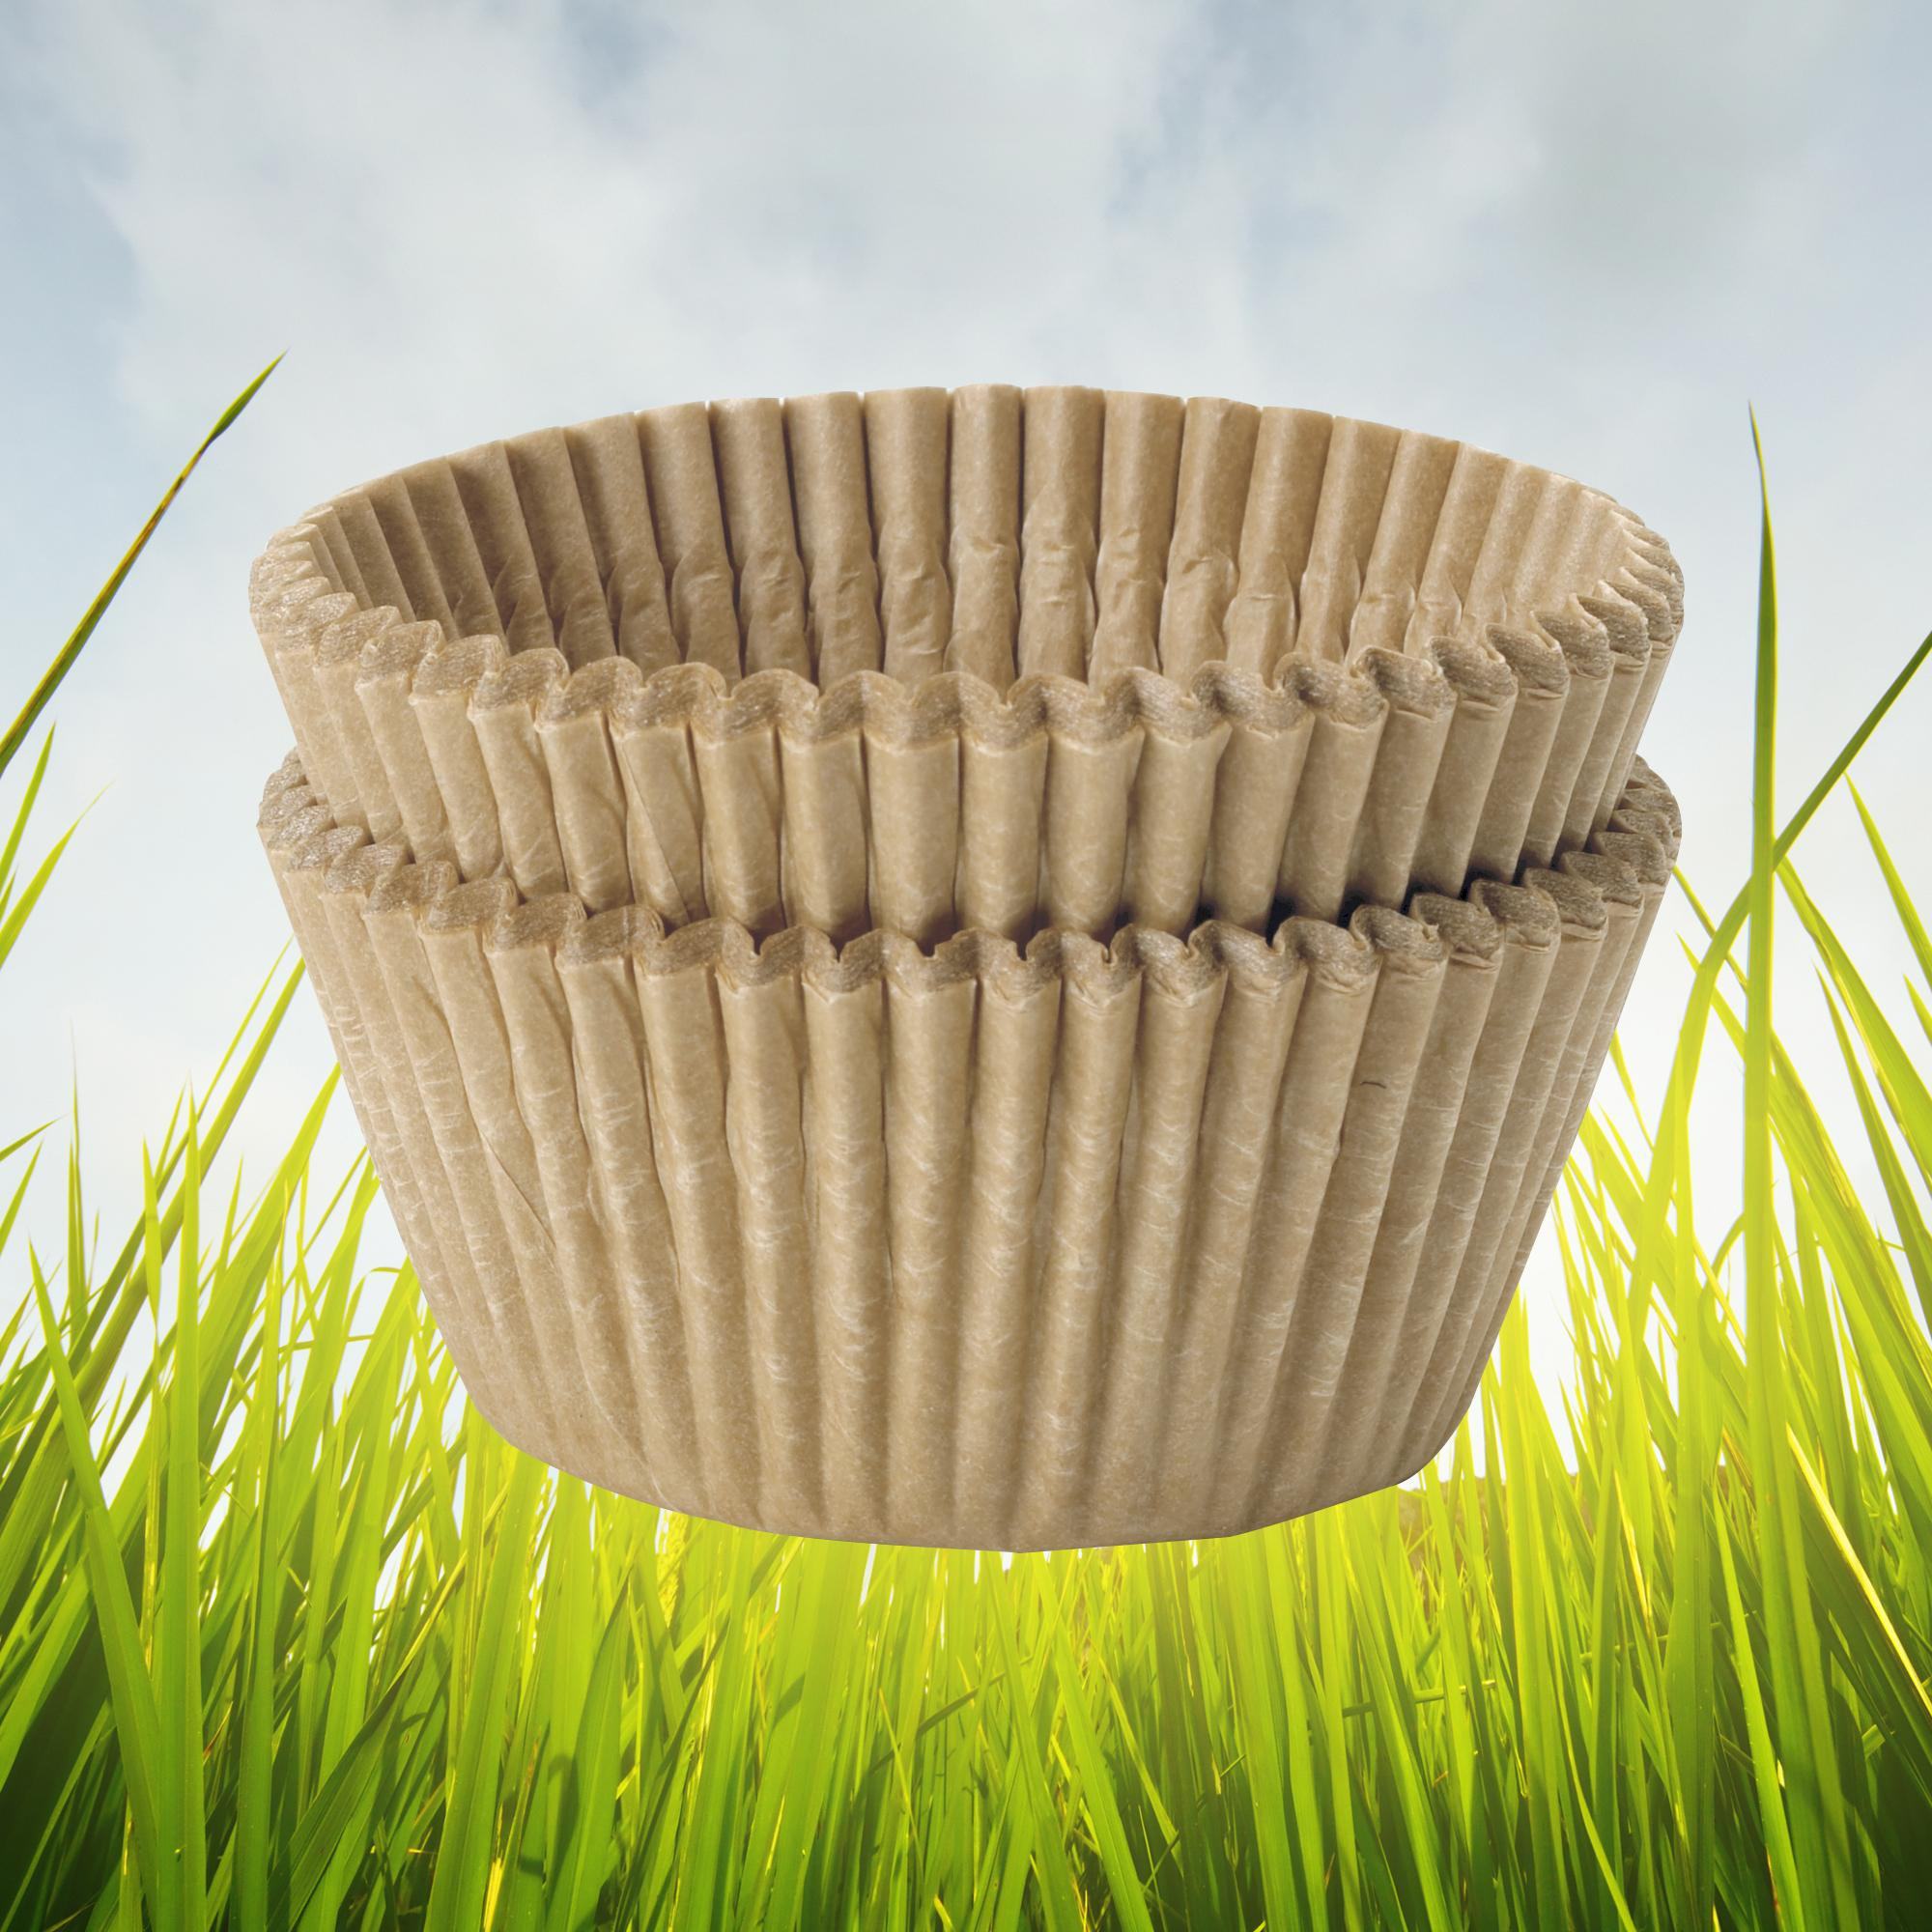 ce1503cd 86f2 4a0f 8608 ac020cae6205  Cone Coffee Filters Coffee Filters If You Care